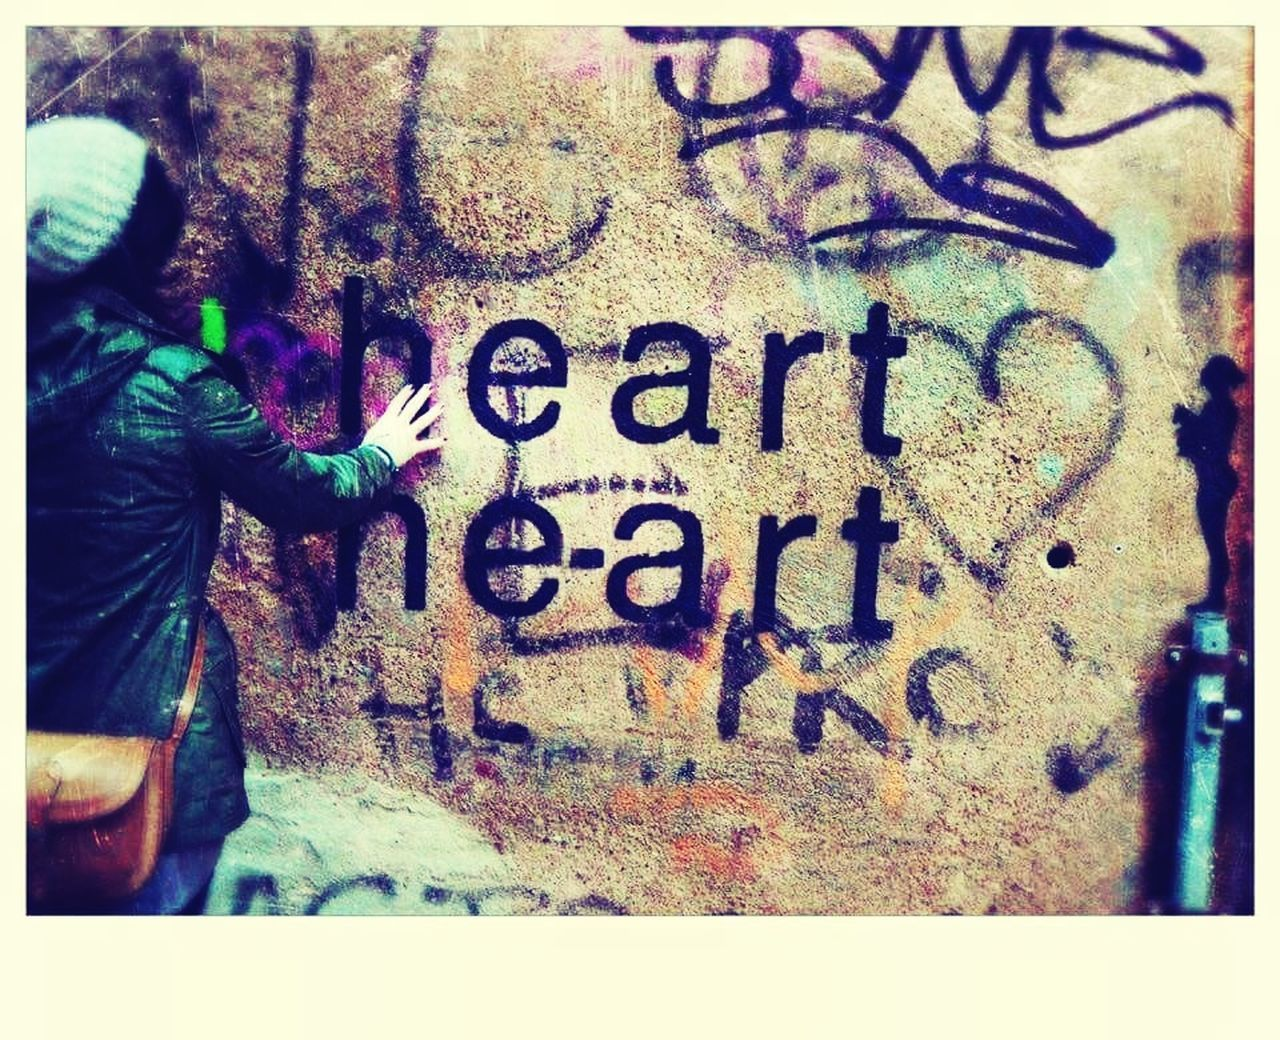 Heart Graffiti He Art Wall Art Me Cagliari Urban City Cagliari, Sardinia